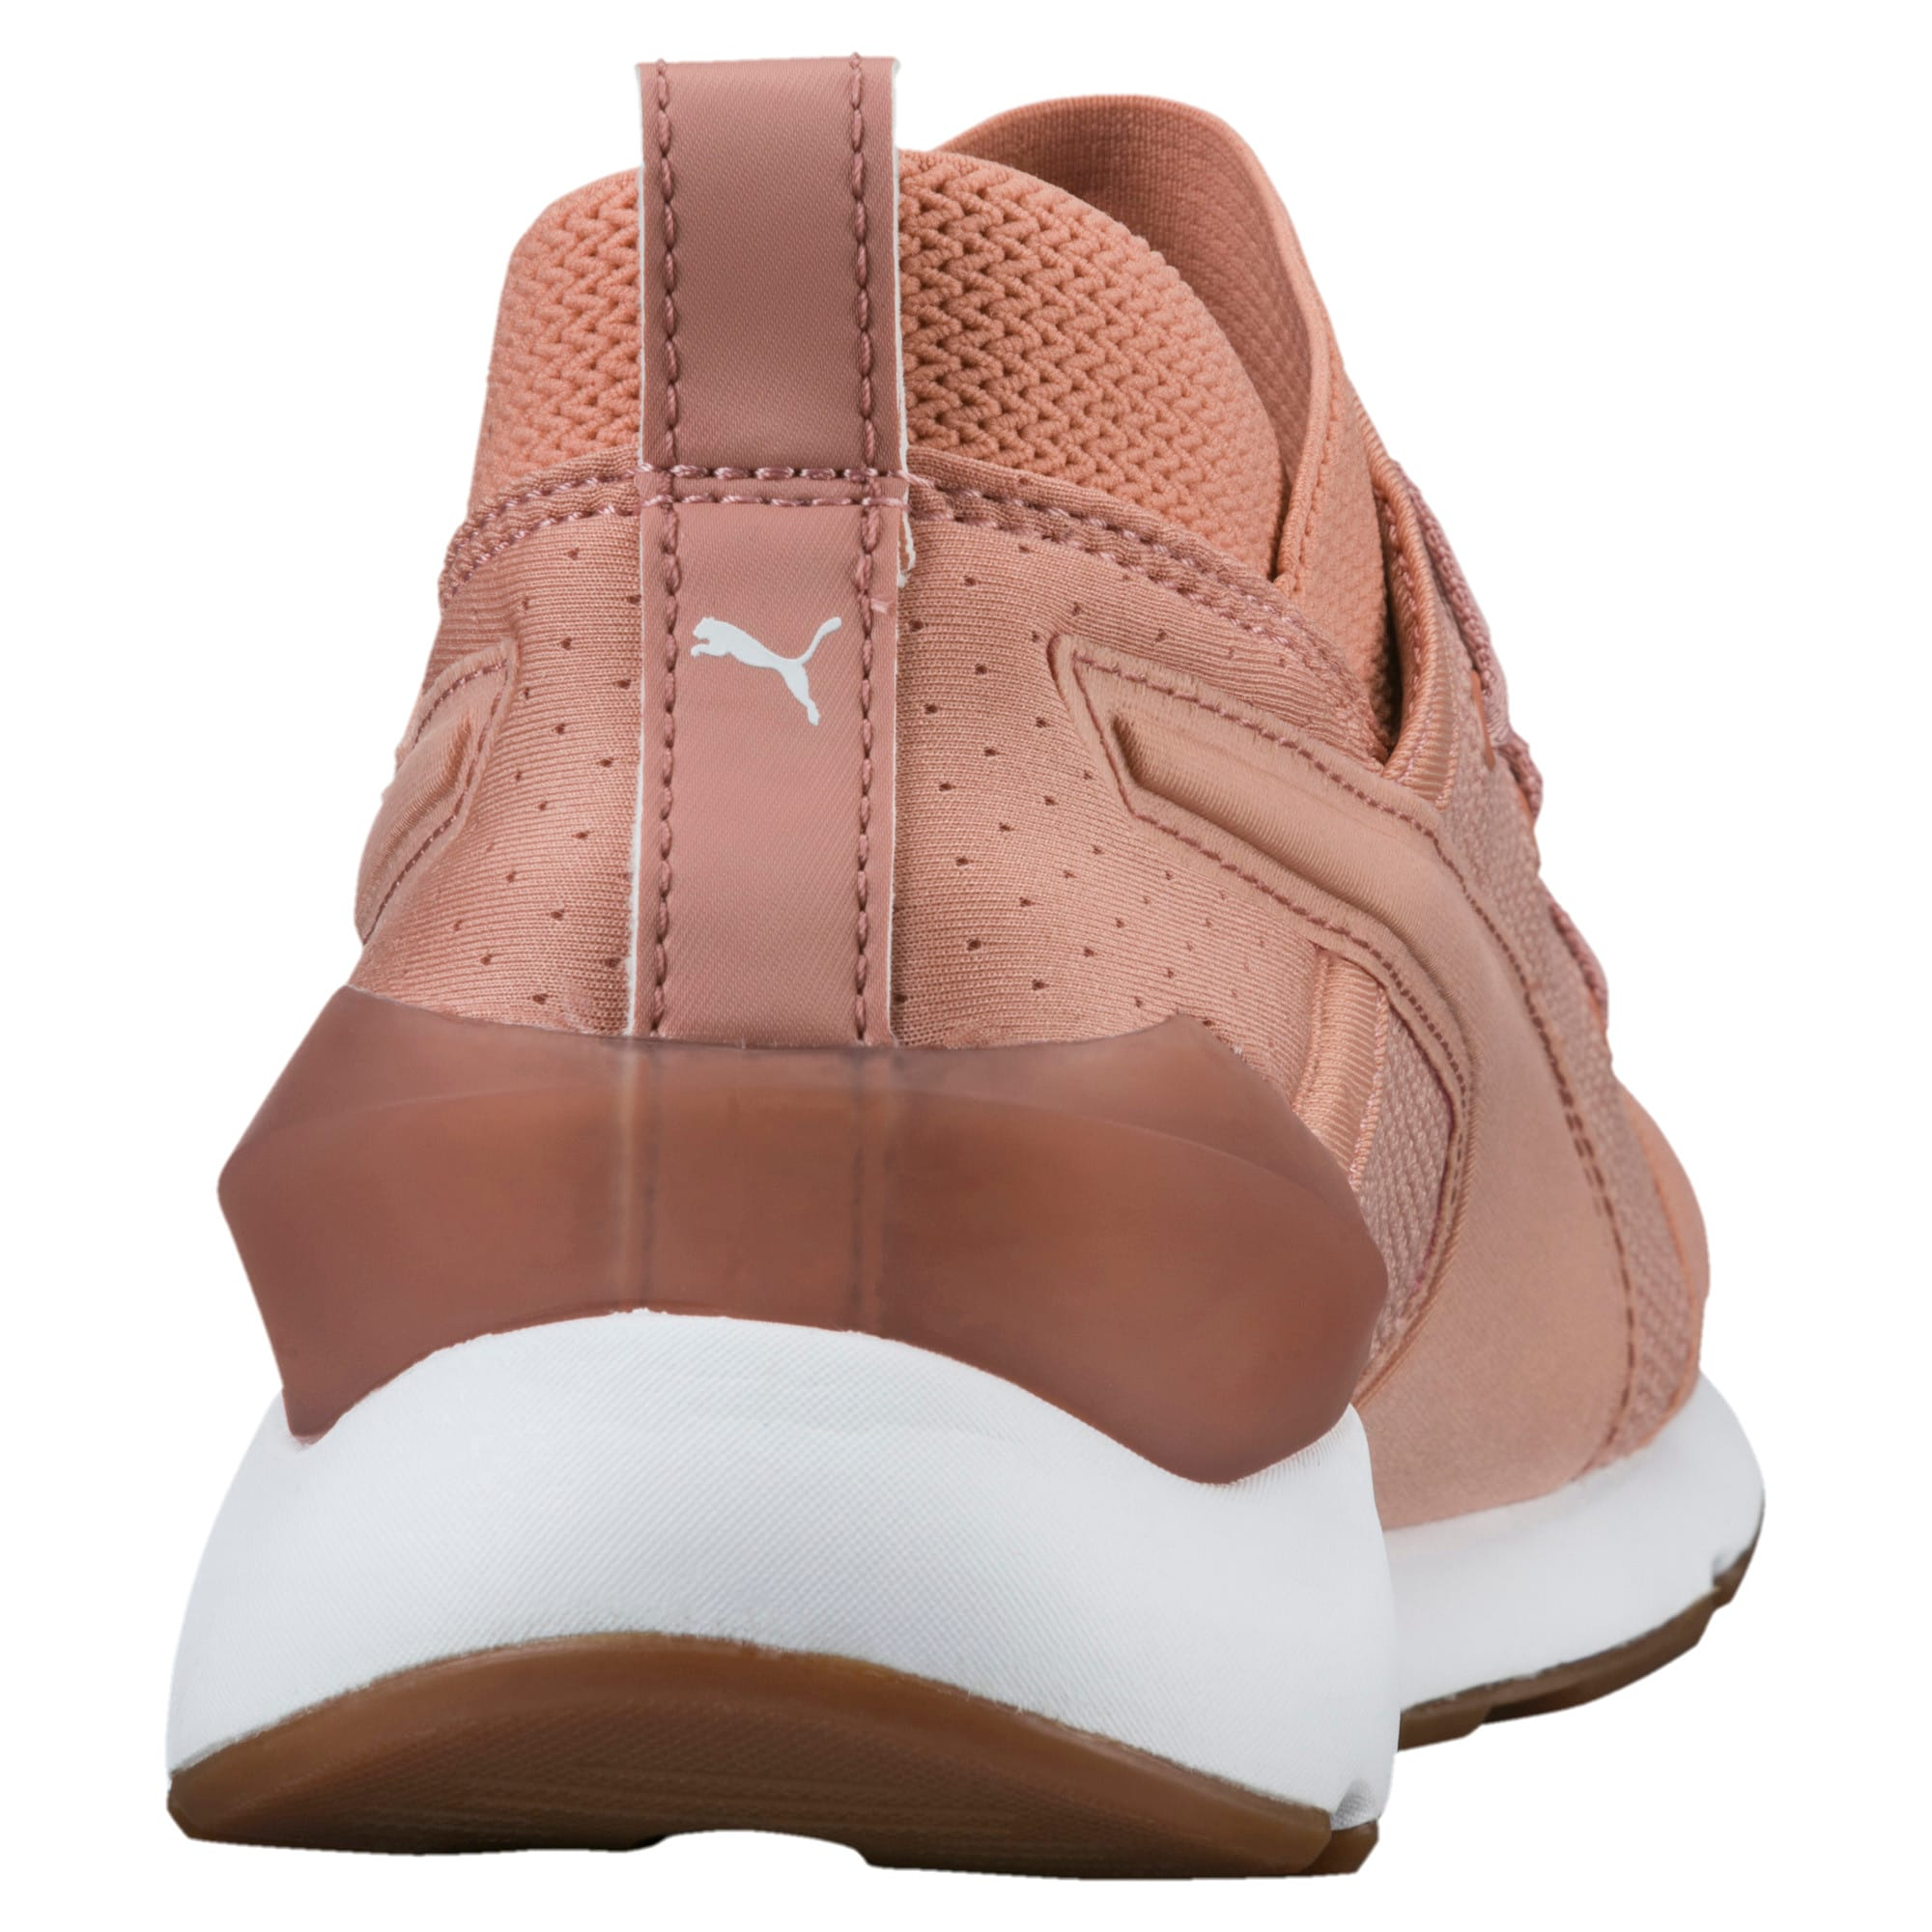 Thumbnail 4 of Pearl DE Women's Trainers, Cameo Brown-Cameo Brown, medium-IND